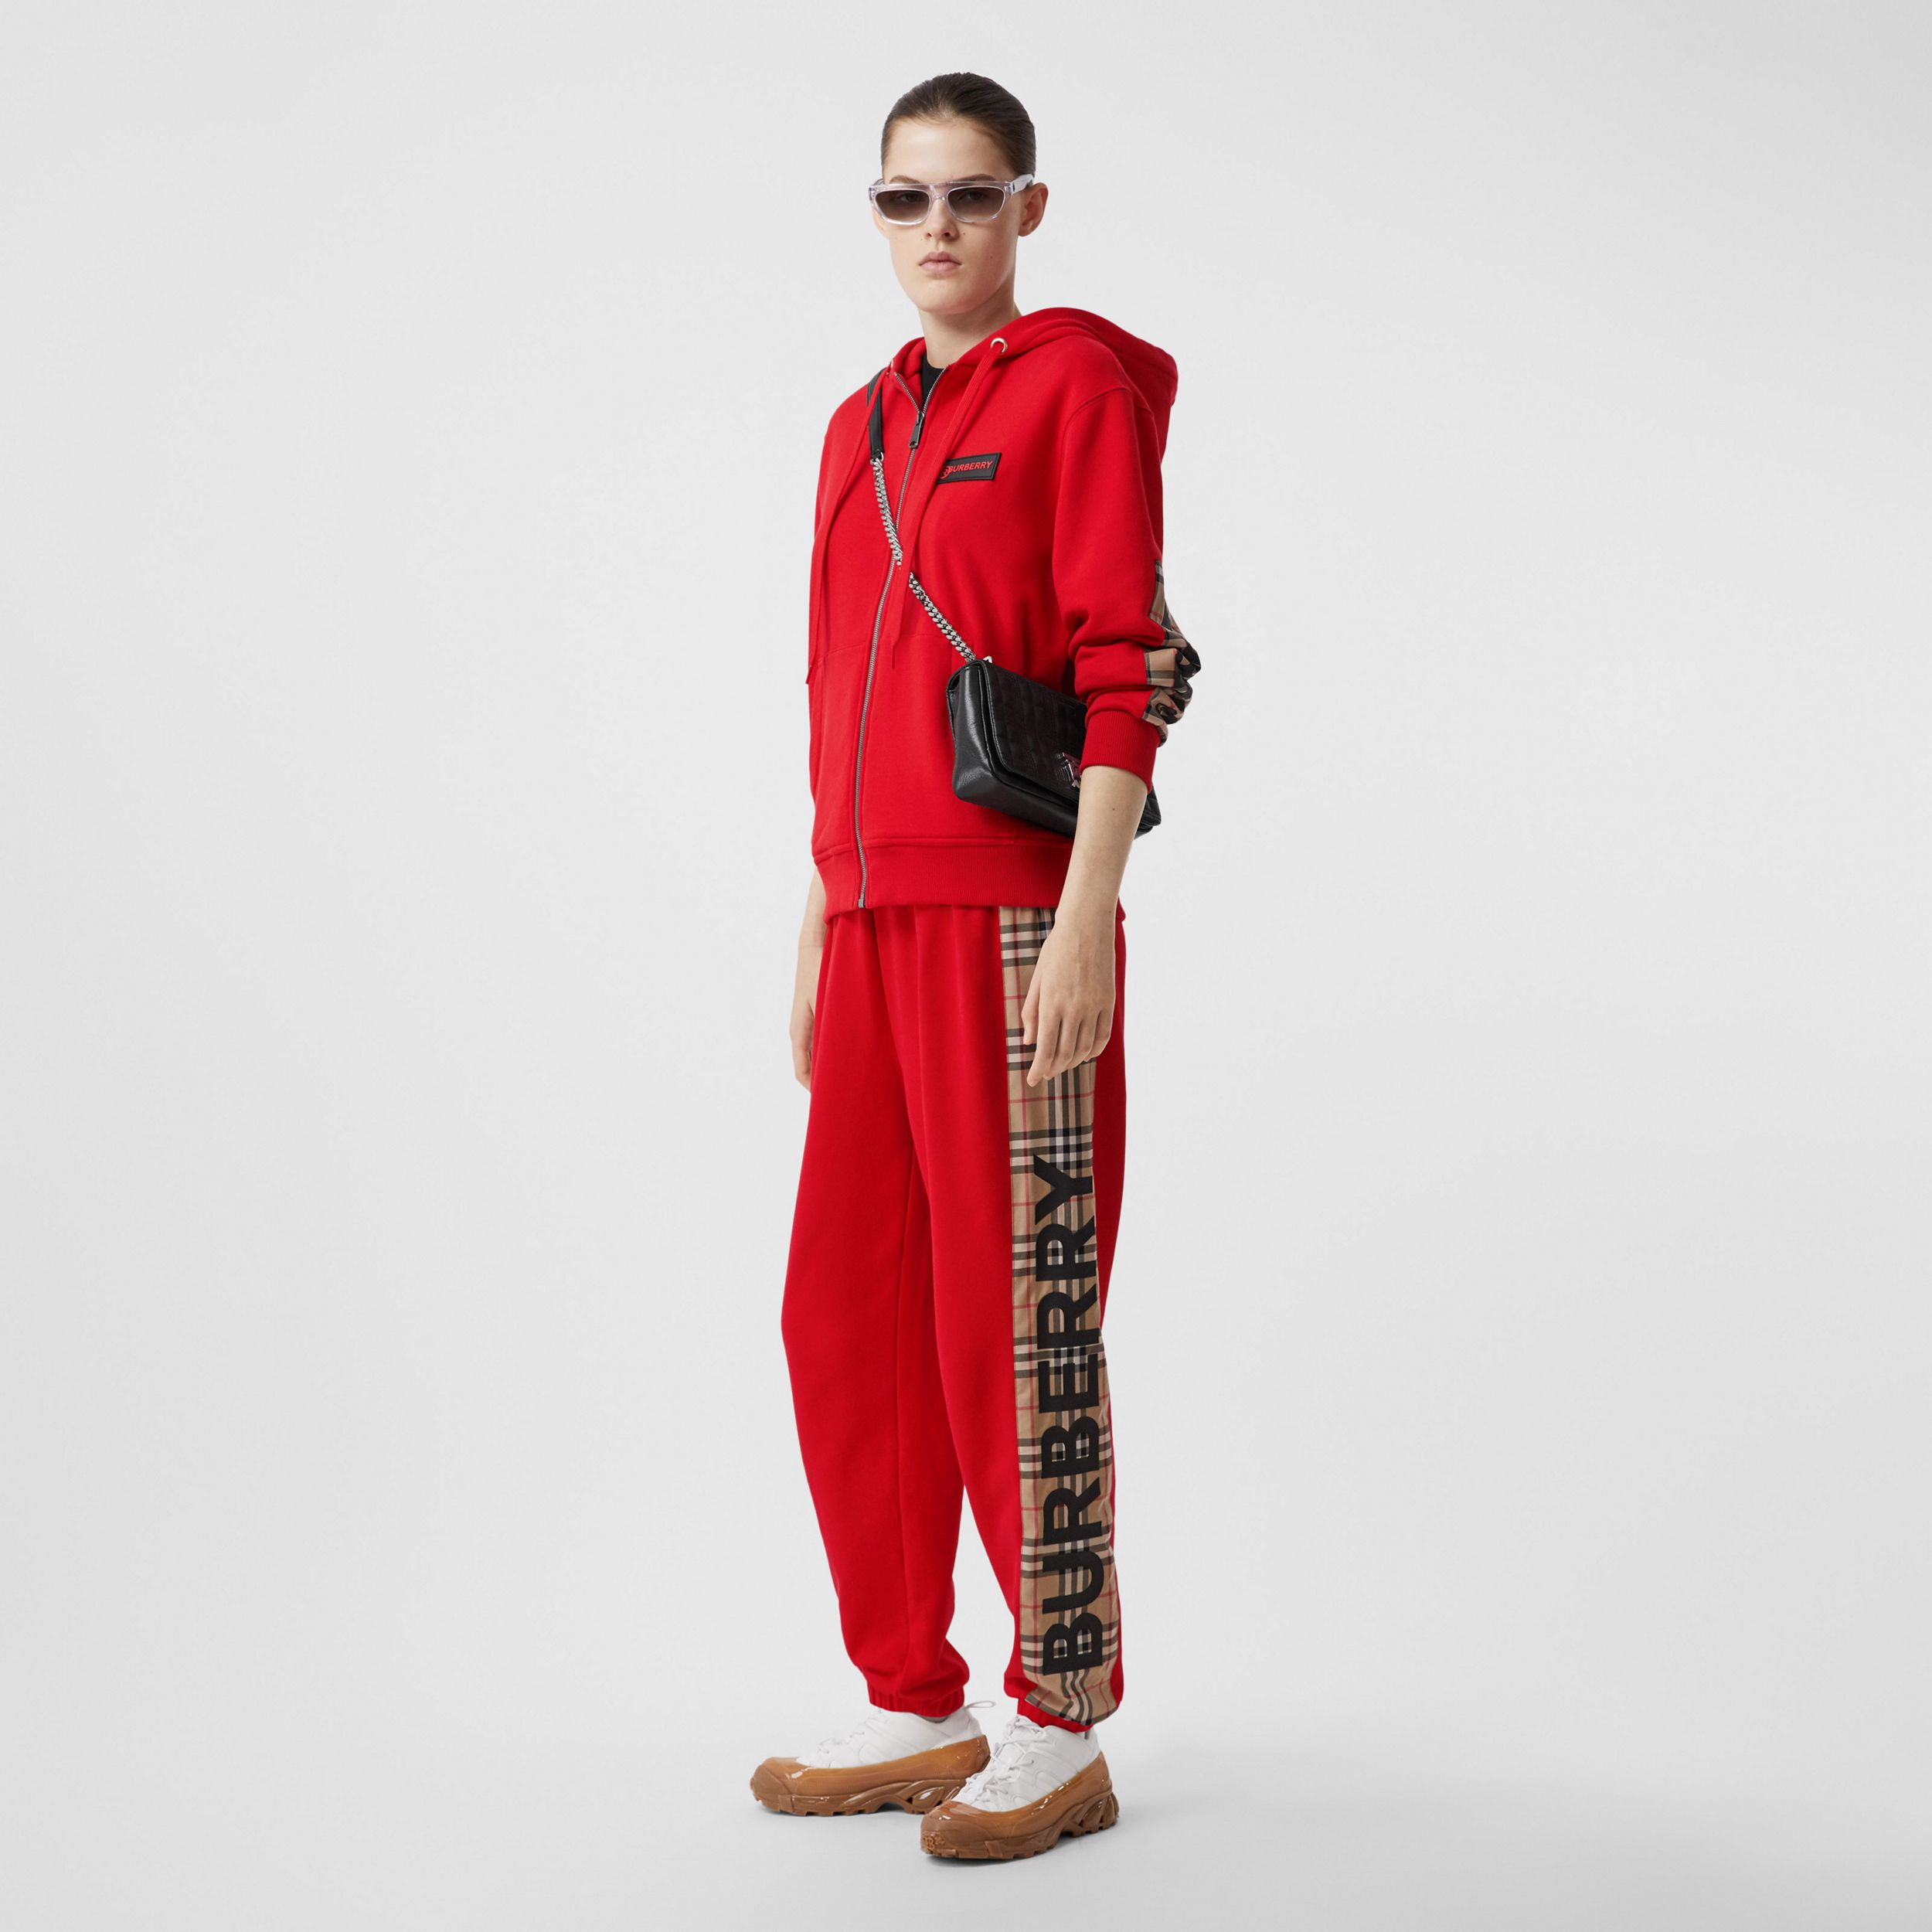 Vintage Check Panel Cotton Jogging Pants in Bright Red - Women | Burberry Canada - 1